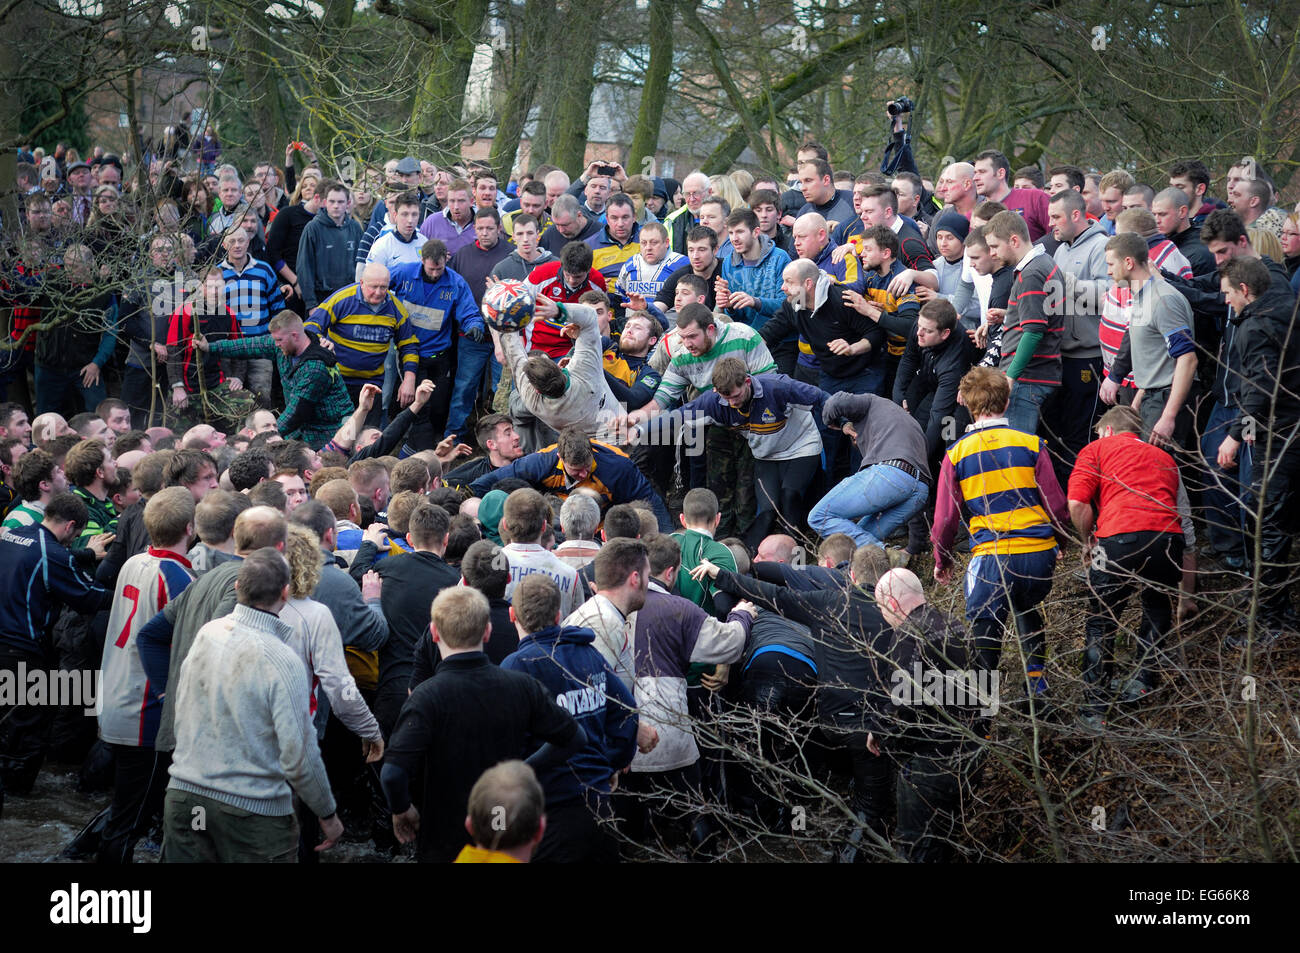 Ashbourne,Derbyshire,UK.17th February 2015. The annual two day shrovetide football game got underway today with Stock Photo